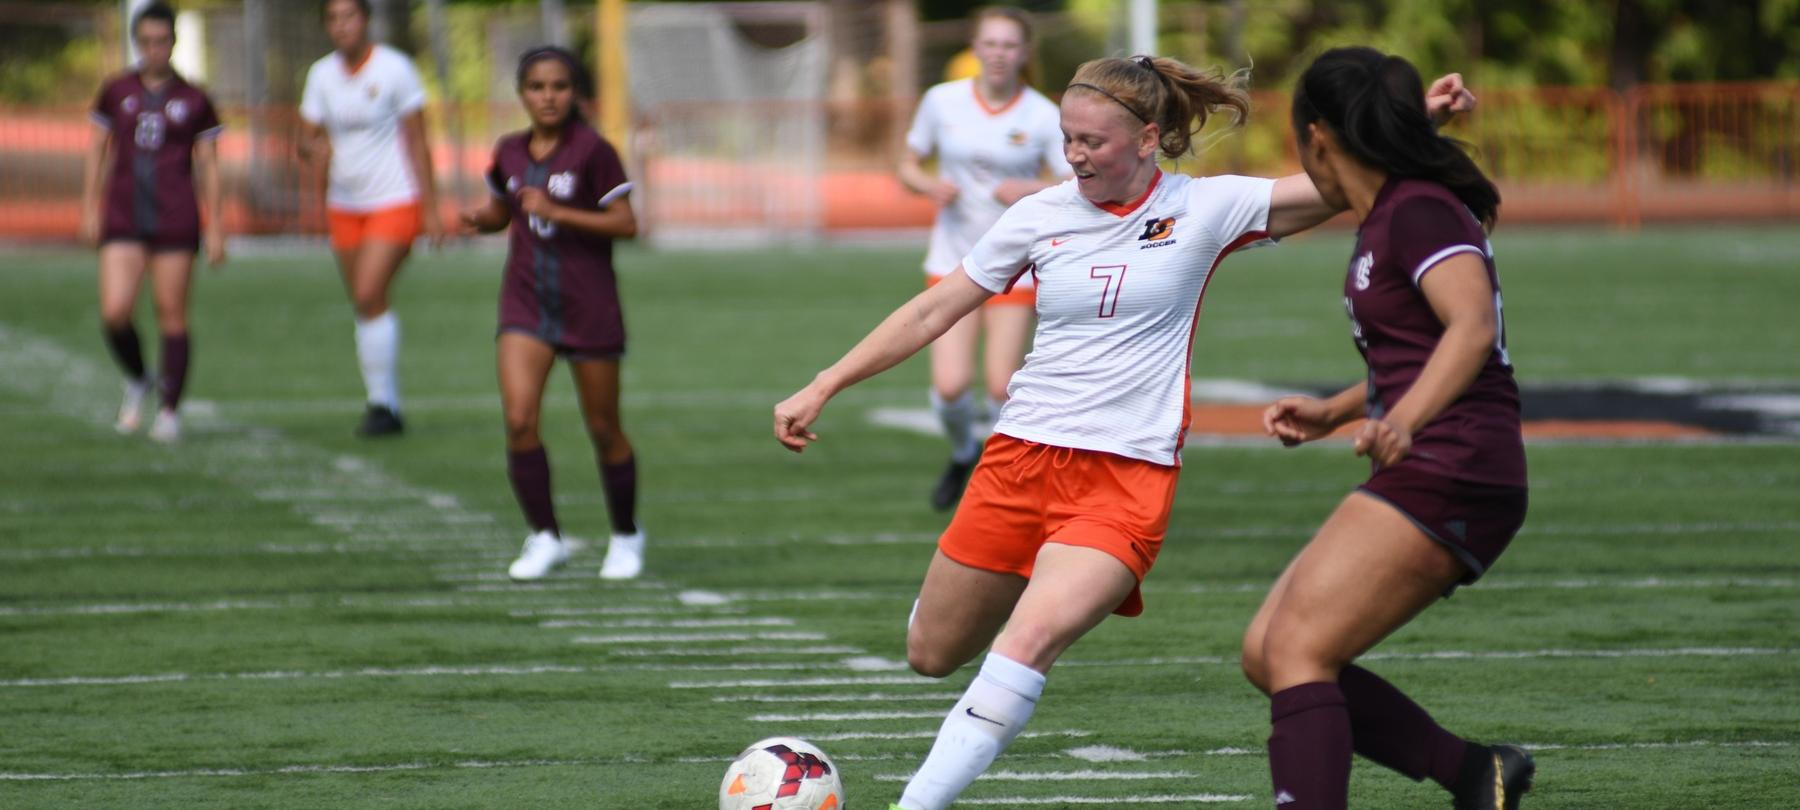 Pioneers end weekend away with a 2-0 loss to Whitworth